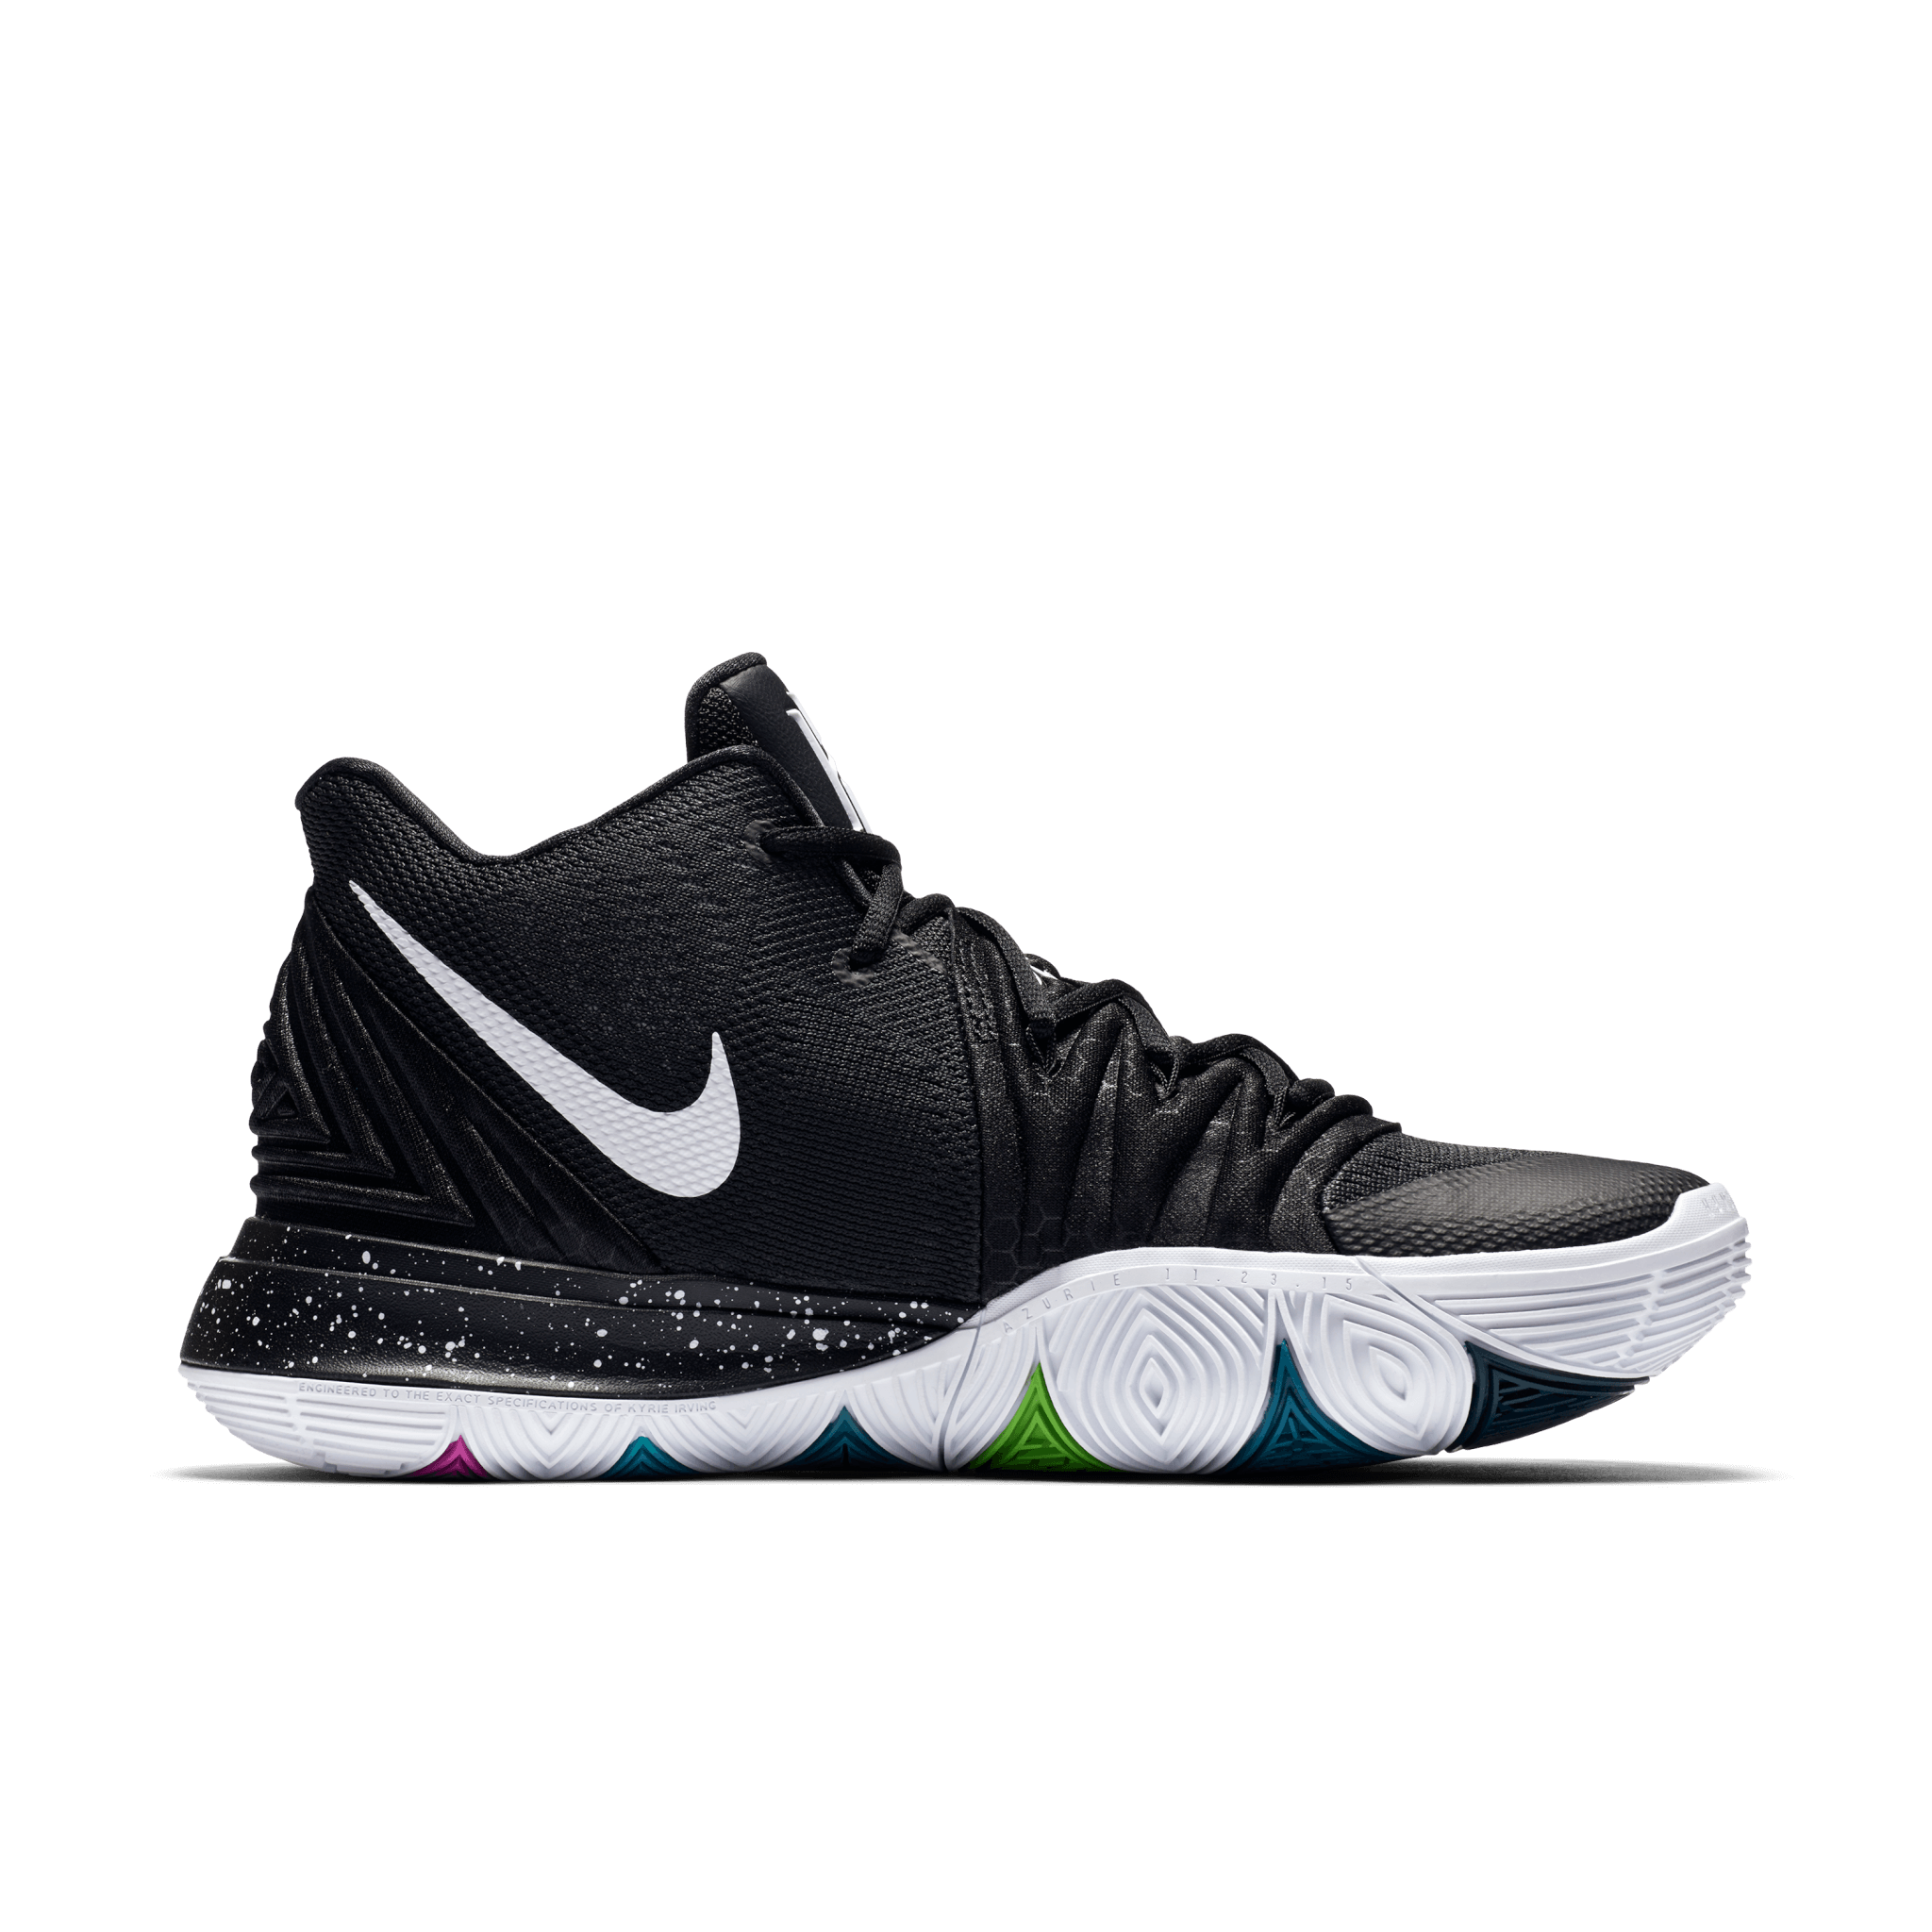 89fbd3e4002871 Nike Kyrie 5 Performance Review